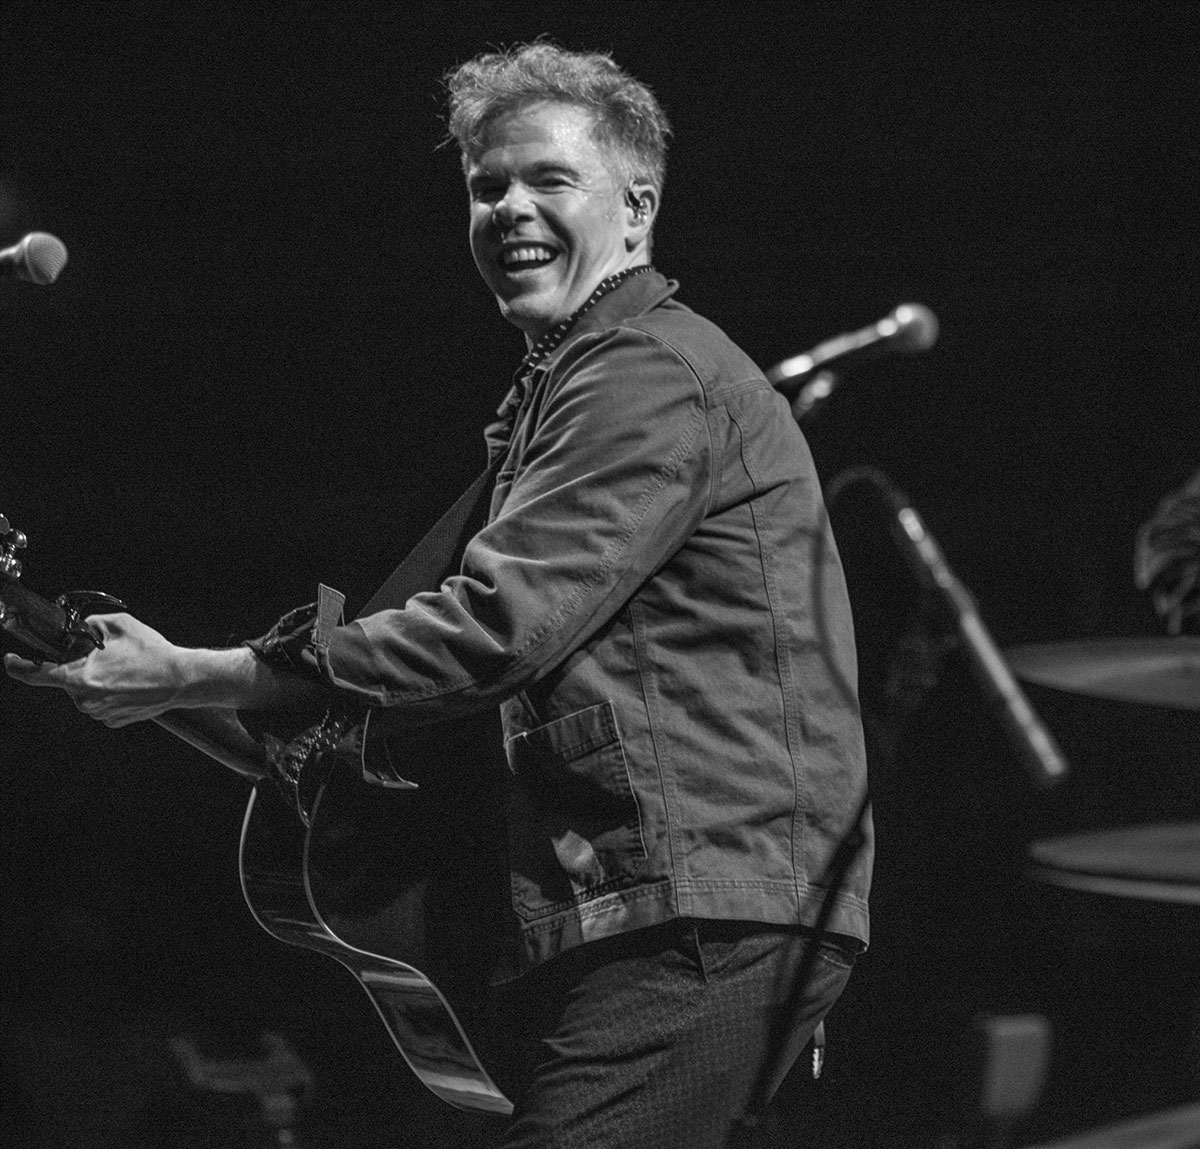 josh ritter losing battles daily play mpe daily play mpe. Black Bedroom Furniture Sets. Home Design Ideas